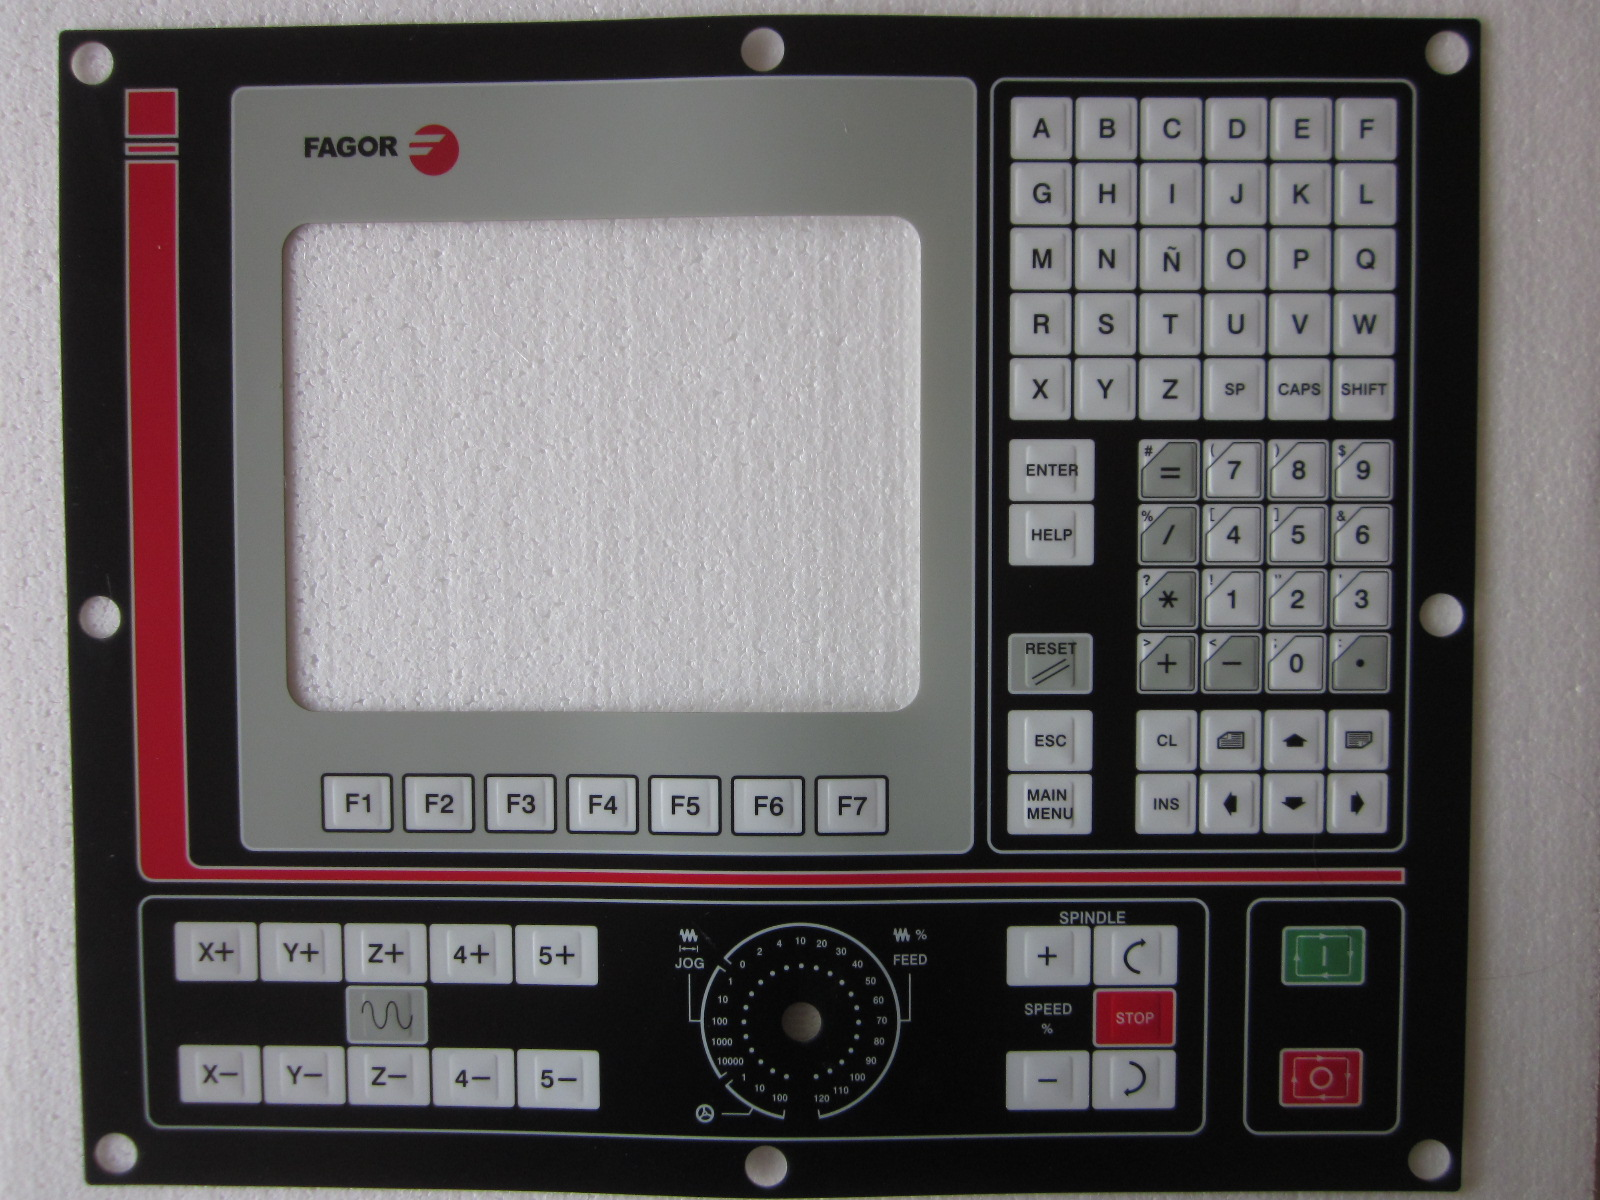 New keypad membrane for Fagor 8055i/B-M 8055i/A-M operation panel repair, Have in stock